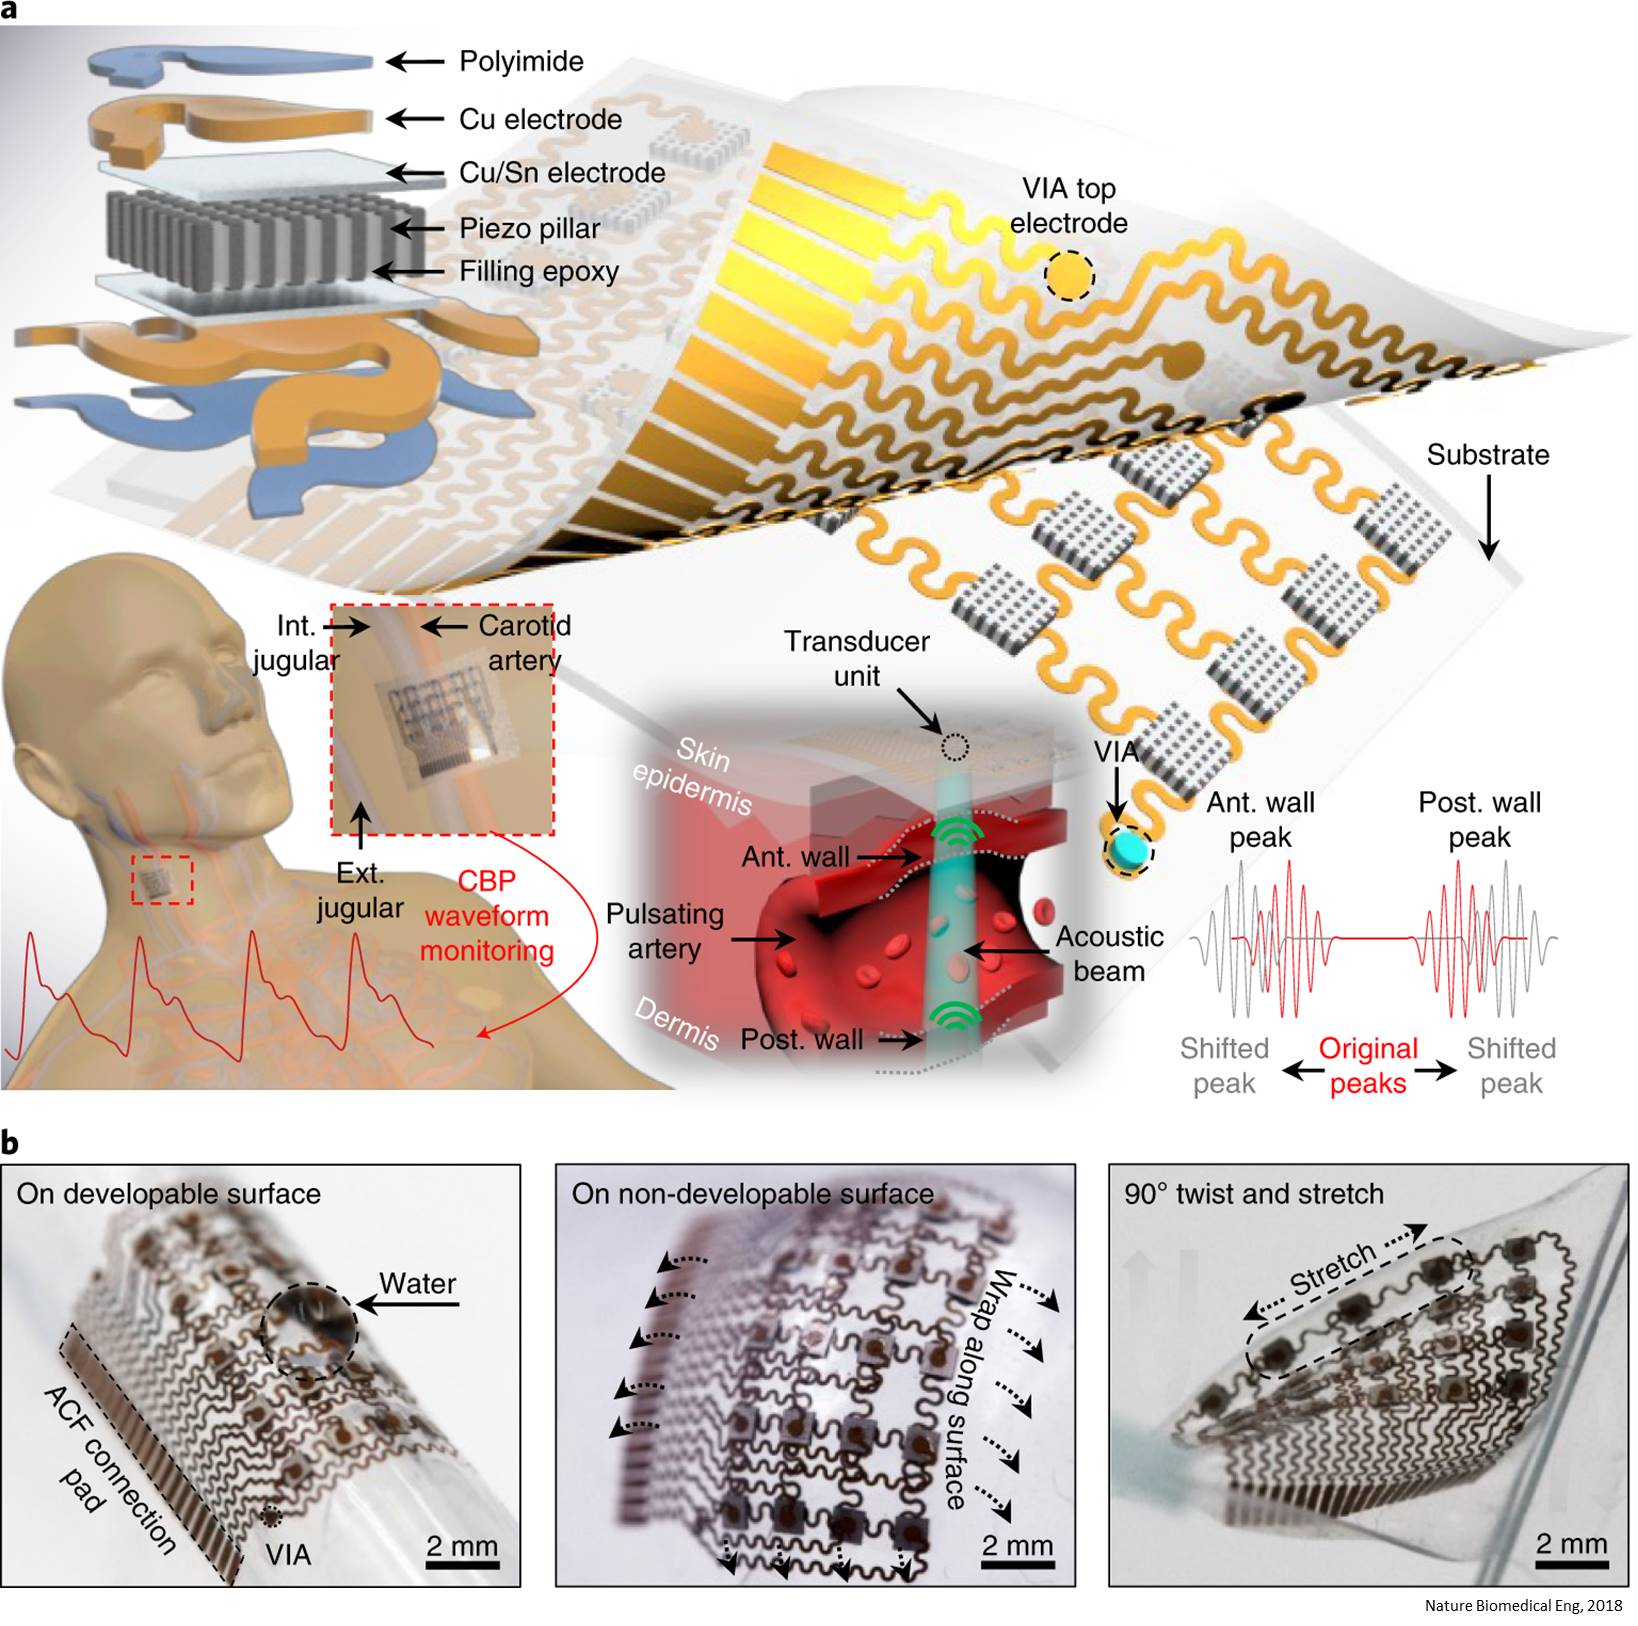 Blood pressure monitoring deep inside the body using non-invasive wearable patch